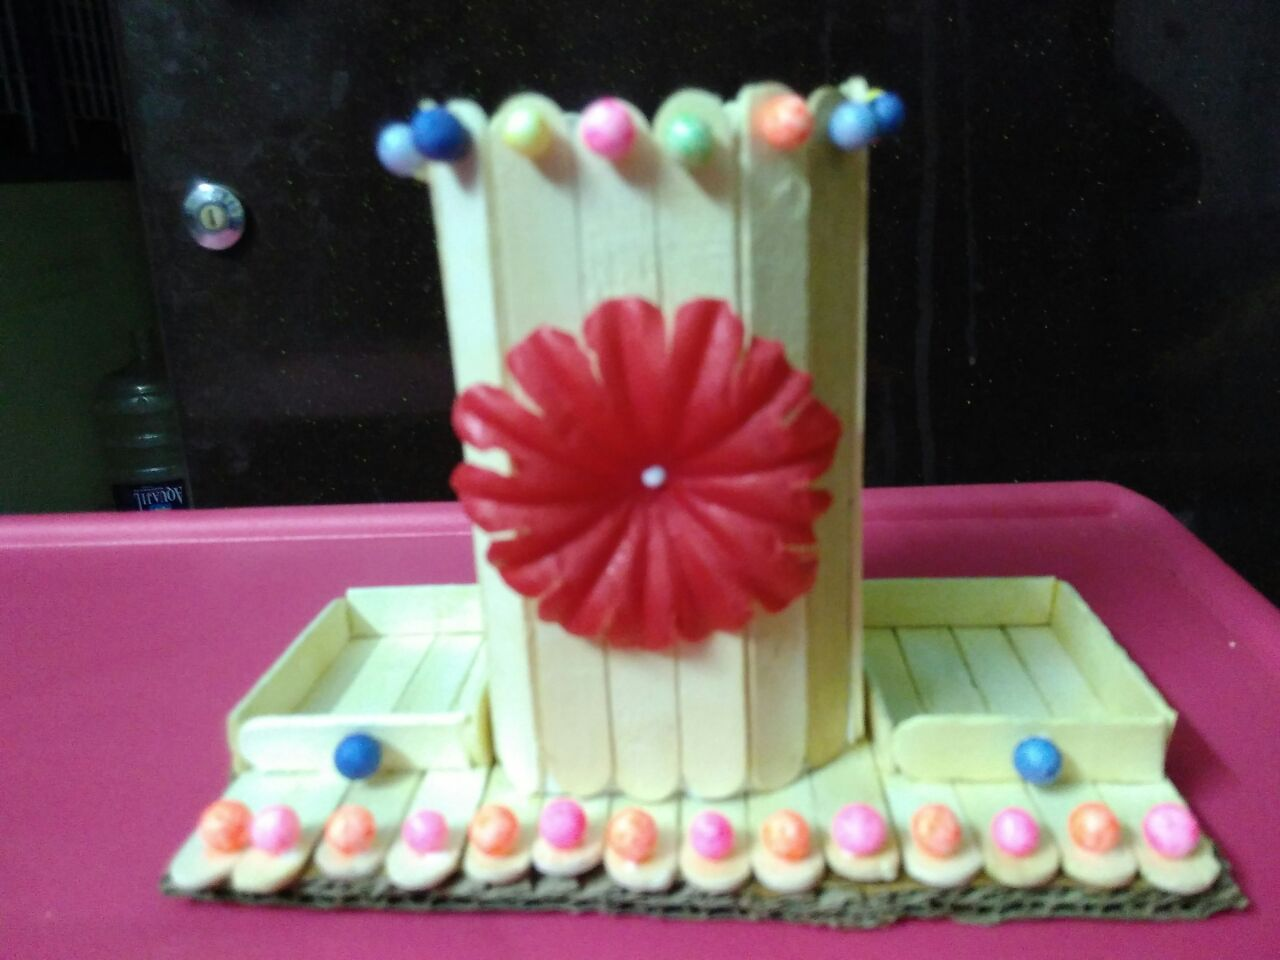 Made from popsicle youtube arts and pen stand with icecream arts wood craft  sticks ideas and